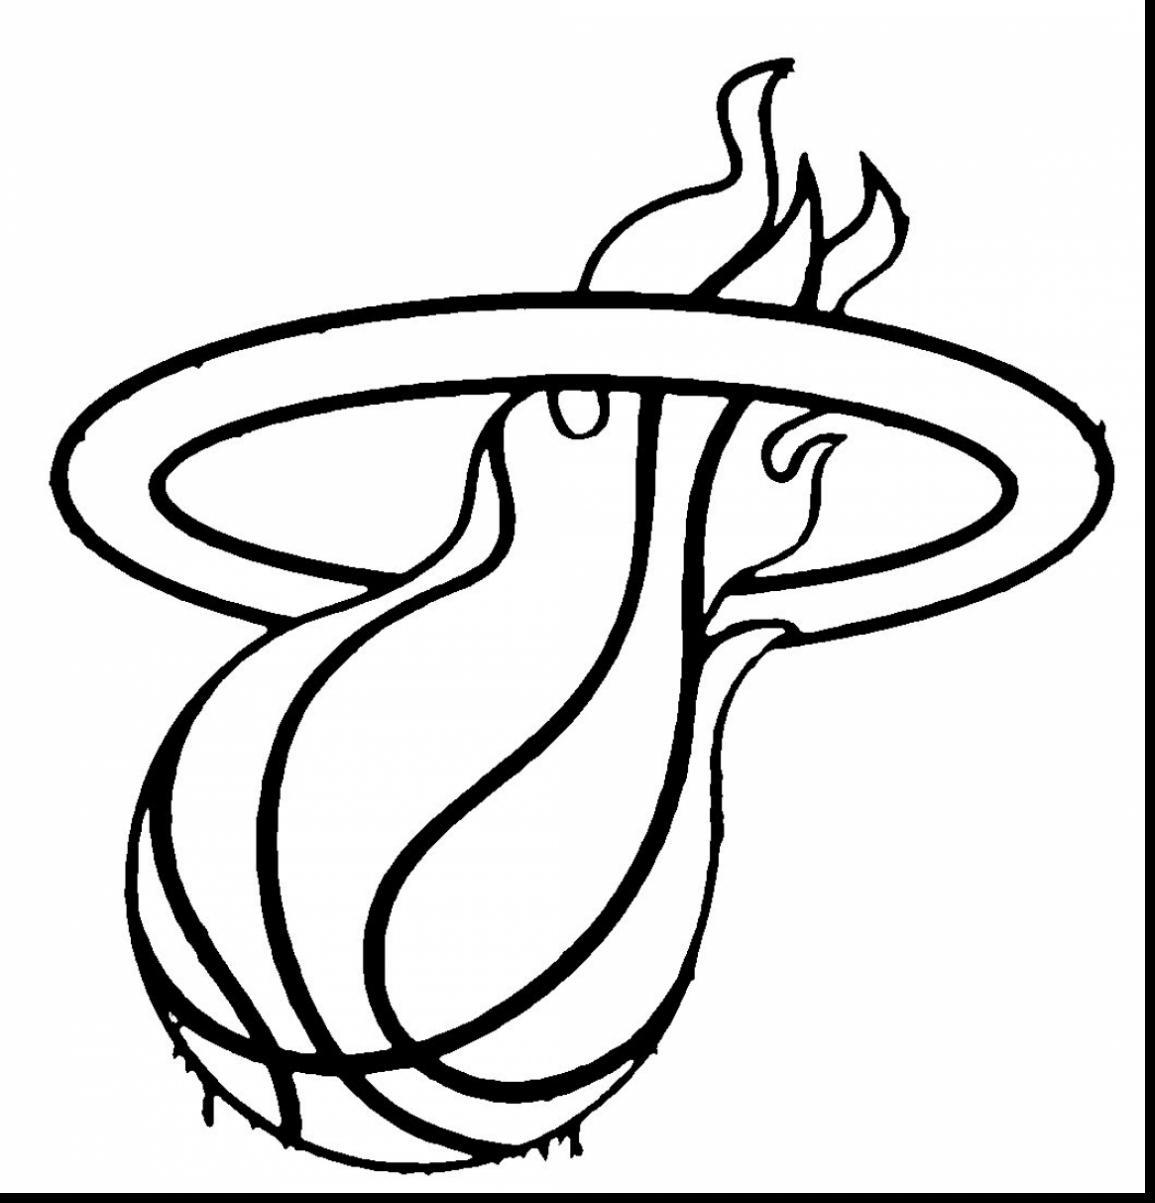 1155x1203 Miami Heat Coloring Pages Coloring Page For Kids